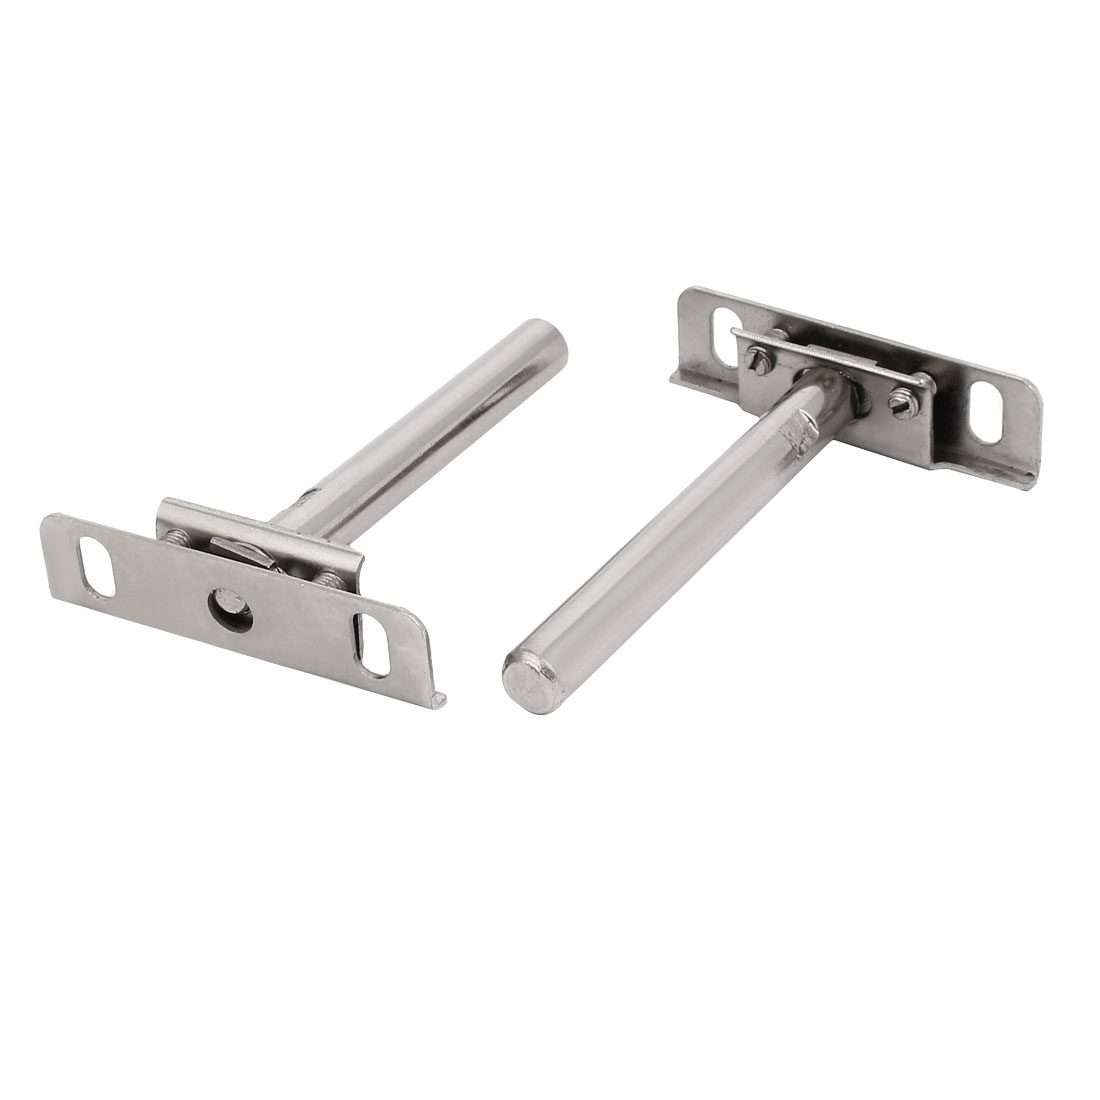 12mm x 100mm Metal Hidden Concealed Invisible Shelf Support Bracket 2pcs